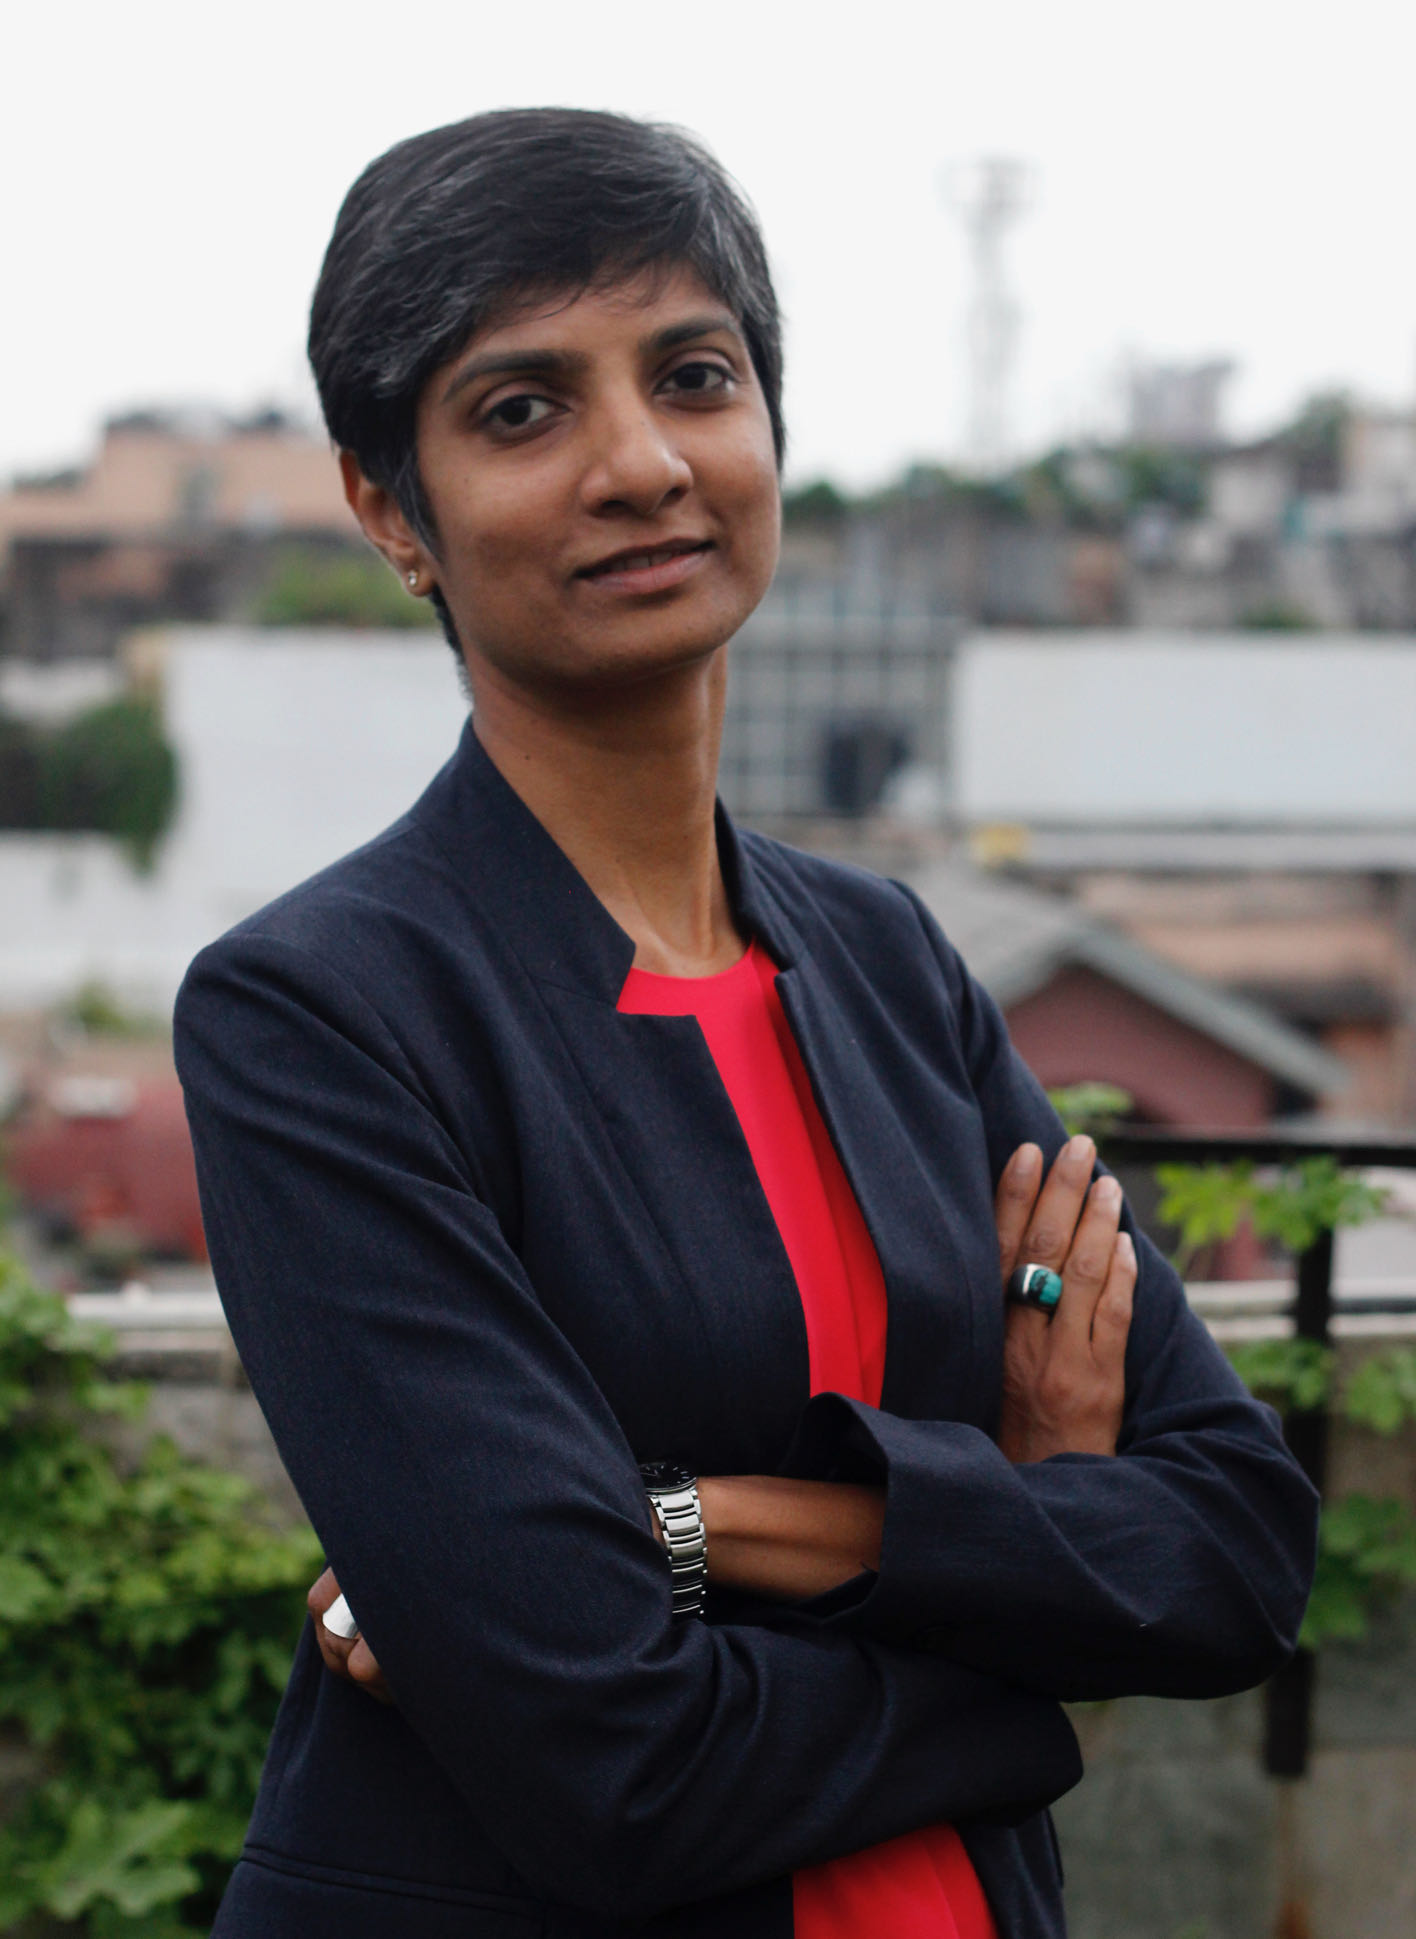 Menaka Guruswamy, October 2018